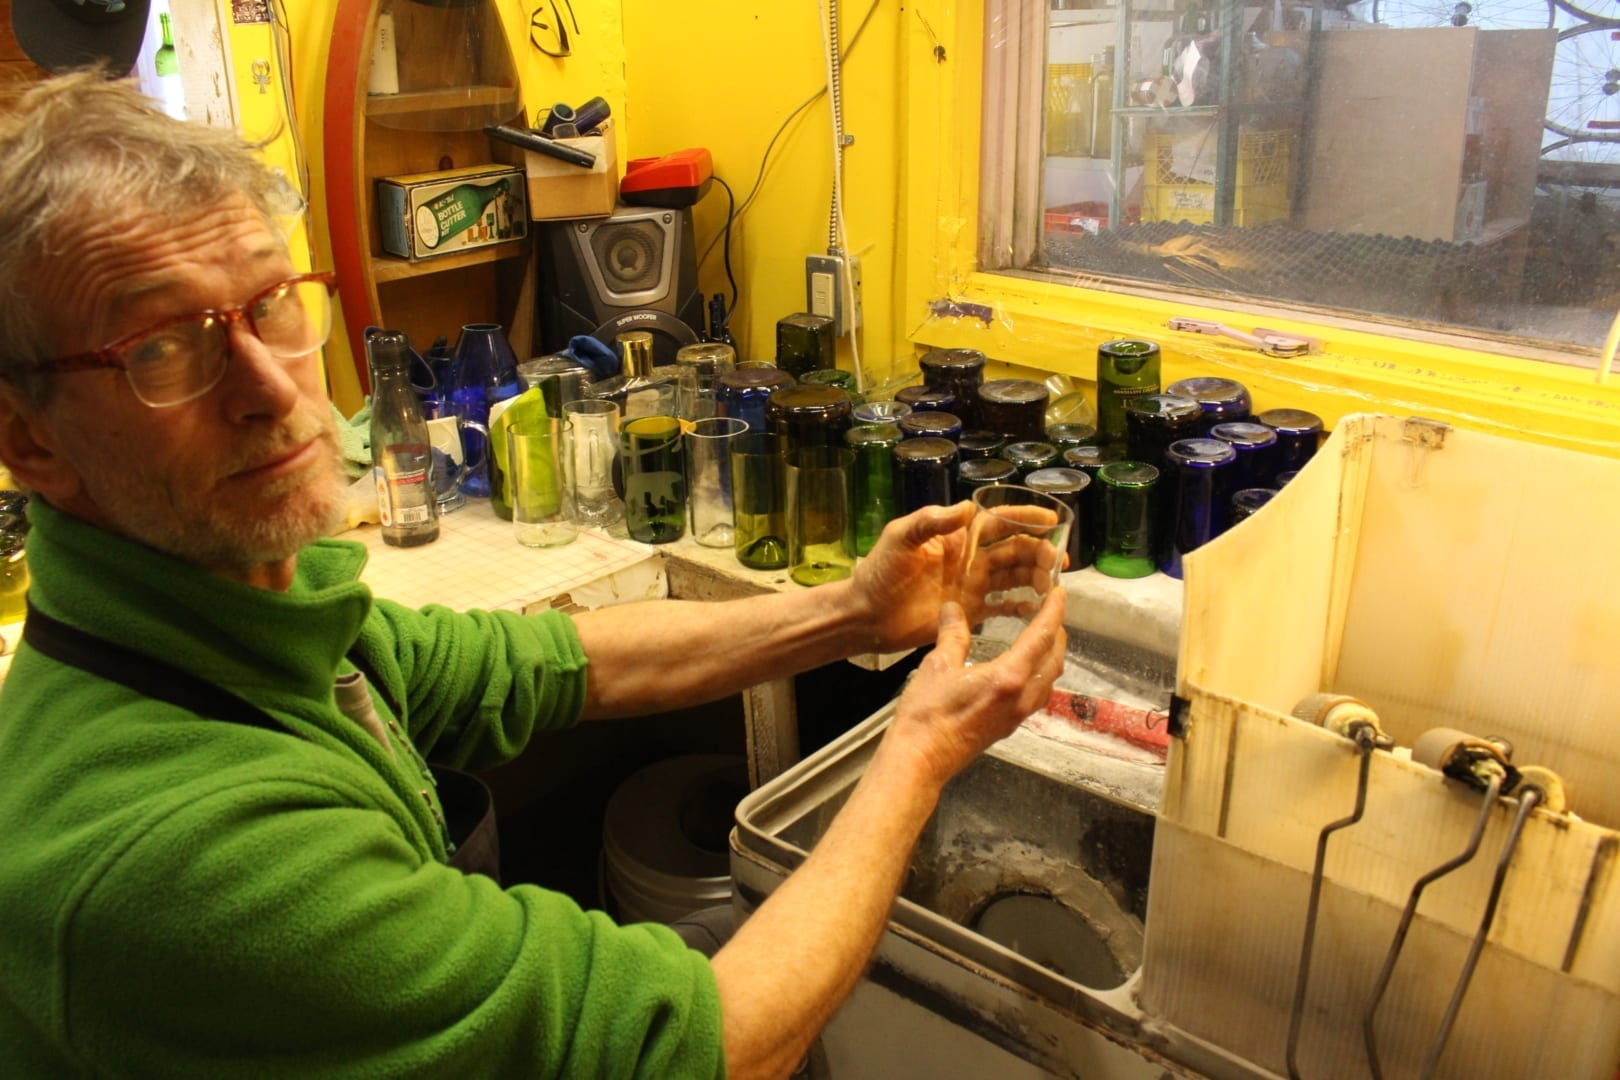 Matthew Grogono shows off a freshly cut glass that will be ground down and polished on his one of a kind custom 1955 Hoover washing machine he built with Gary Vaillancourt. He's been using the machine since he started Old Town Glassworks in 1994. Brett McGarry/NNSL Photo